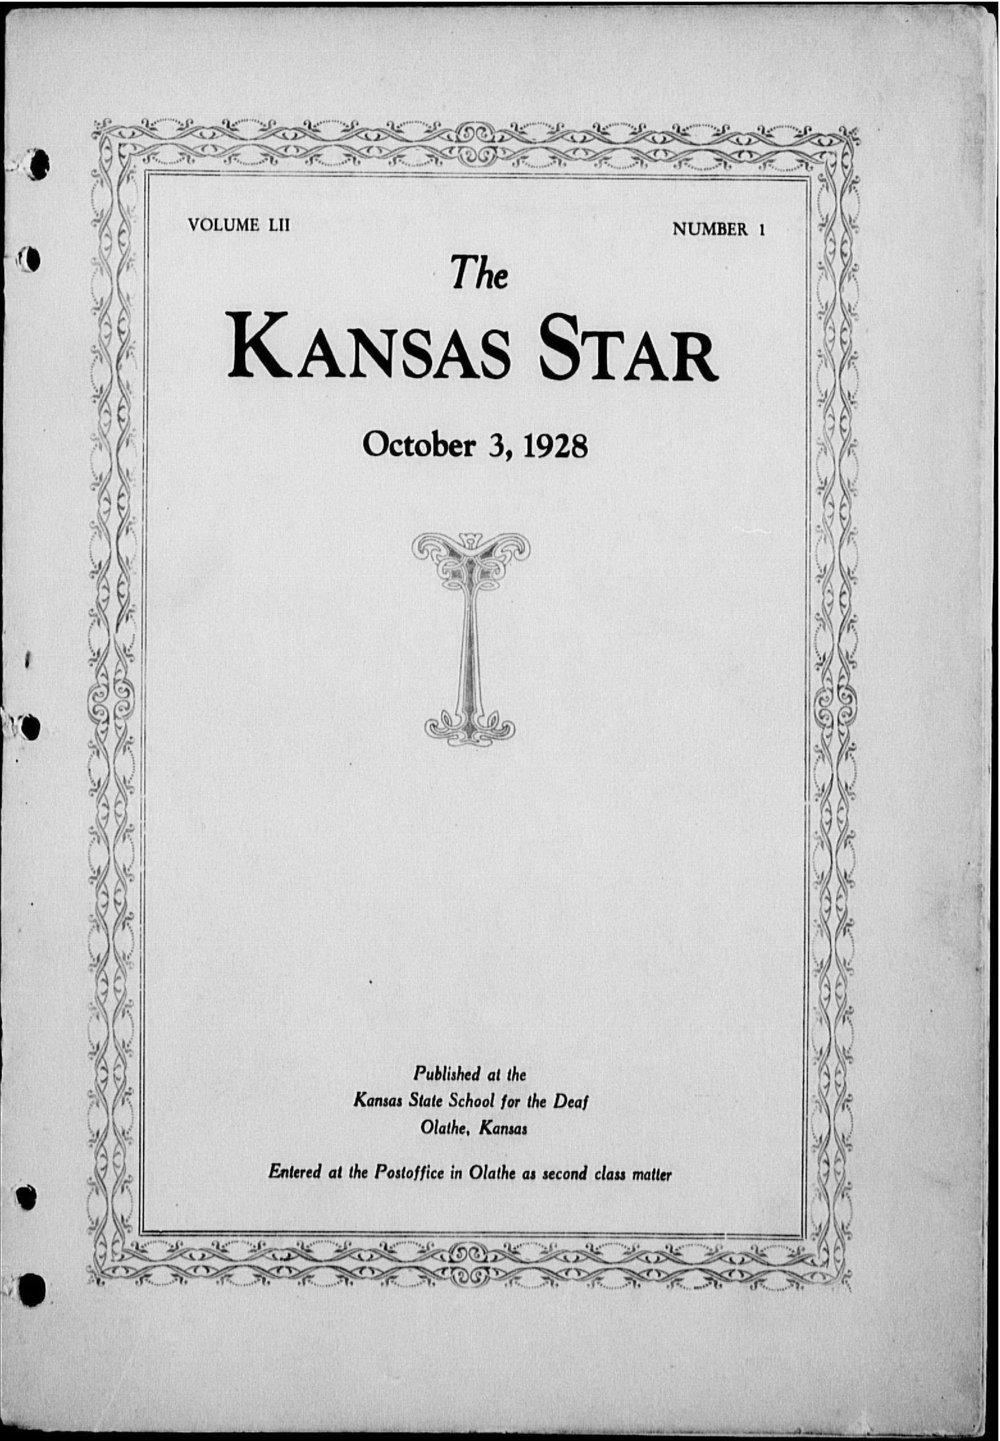 The Kansas Star, volume 52, number 1 - Front cover